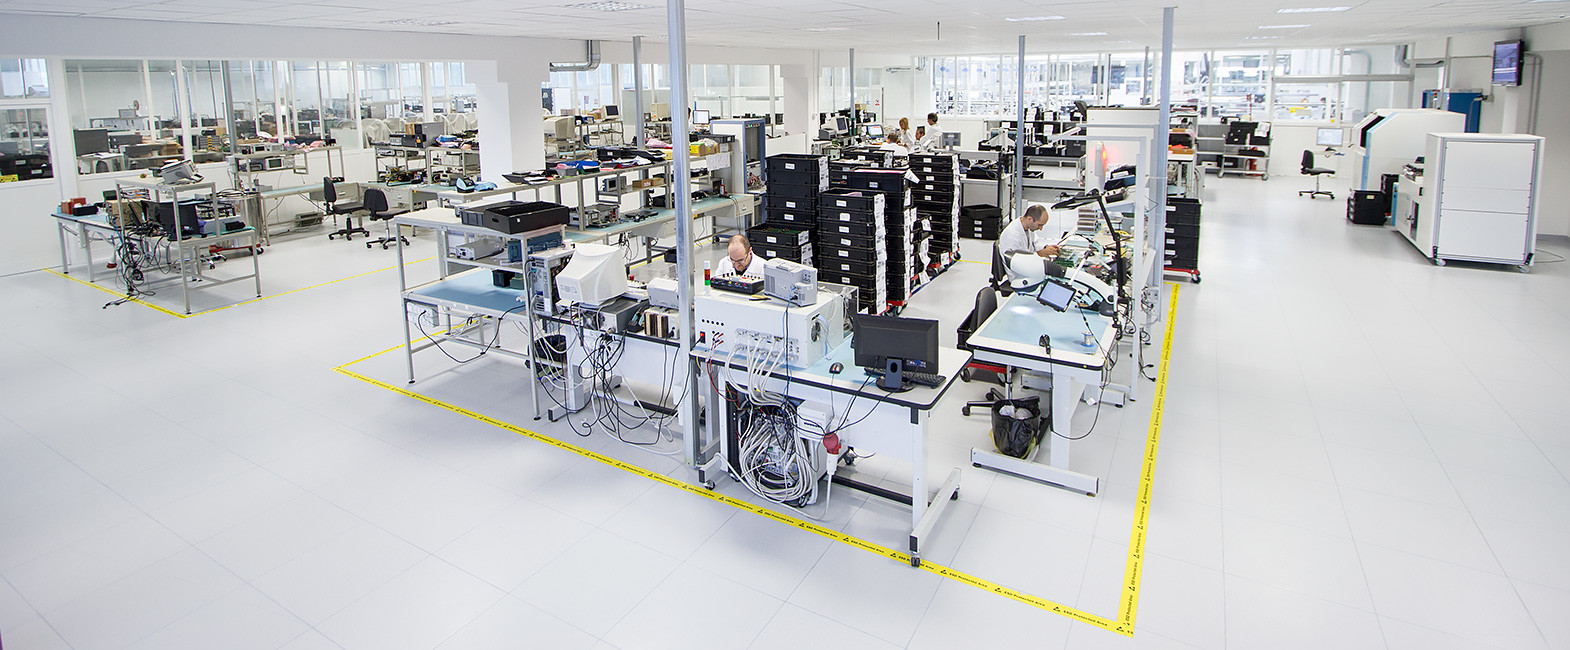 MB Elettronica – Production